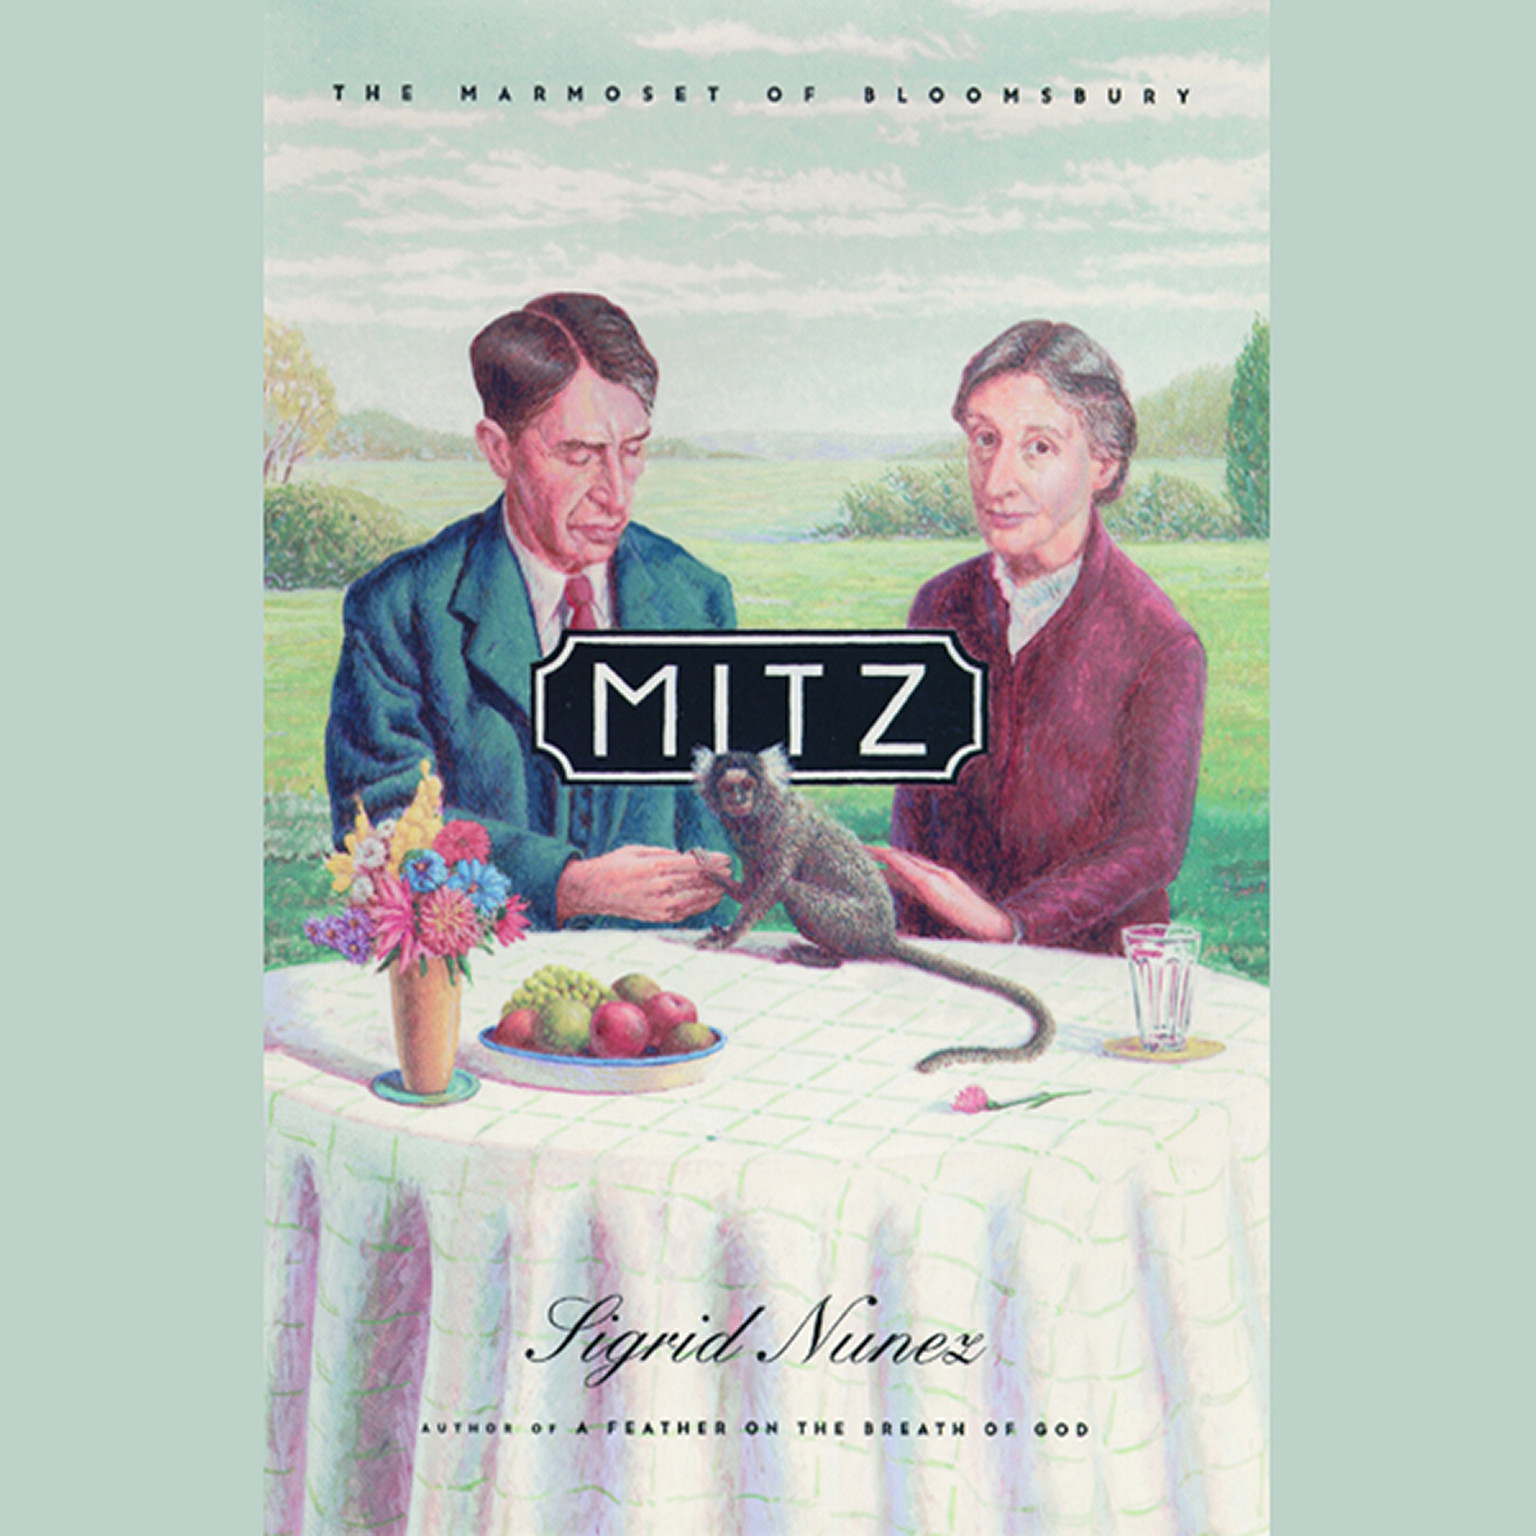 Printable Mitz: The Marmoset of Bloomsbury Audiobook Cover Art